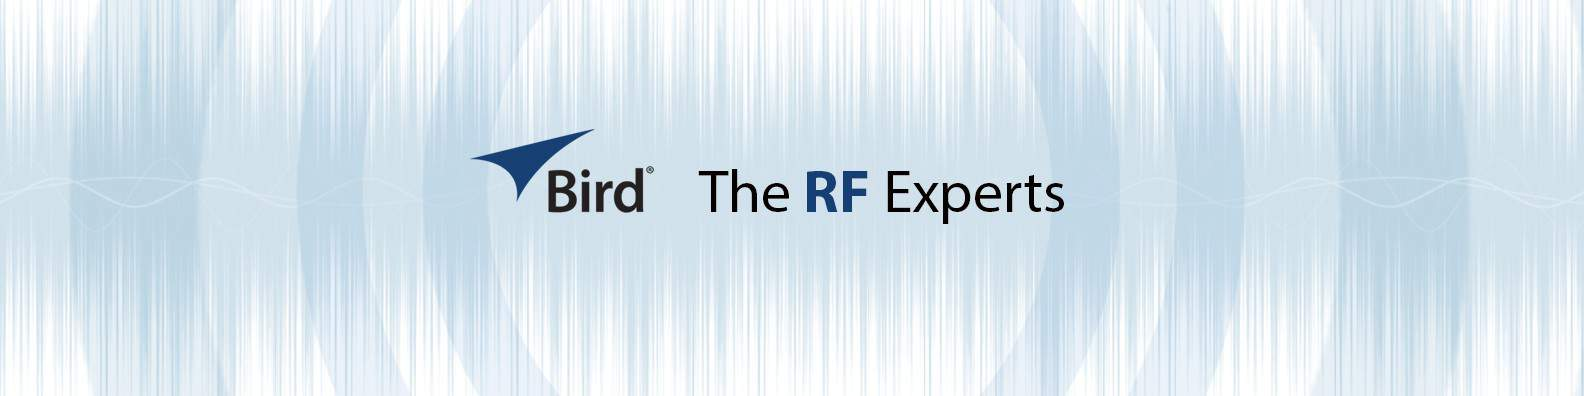 bird the rf experts banner